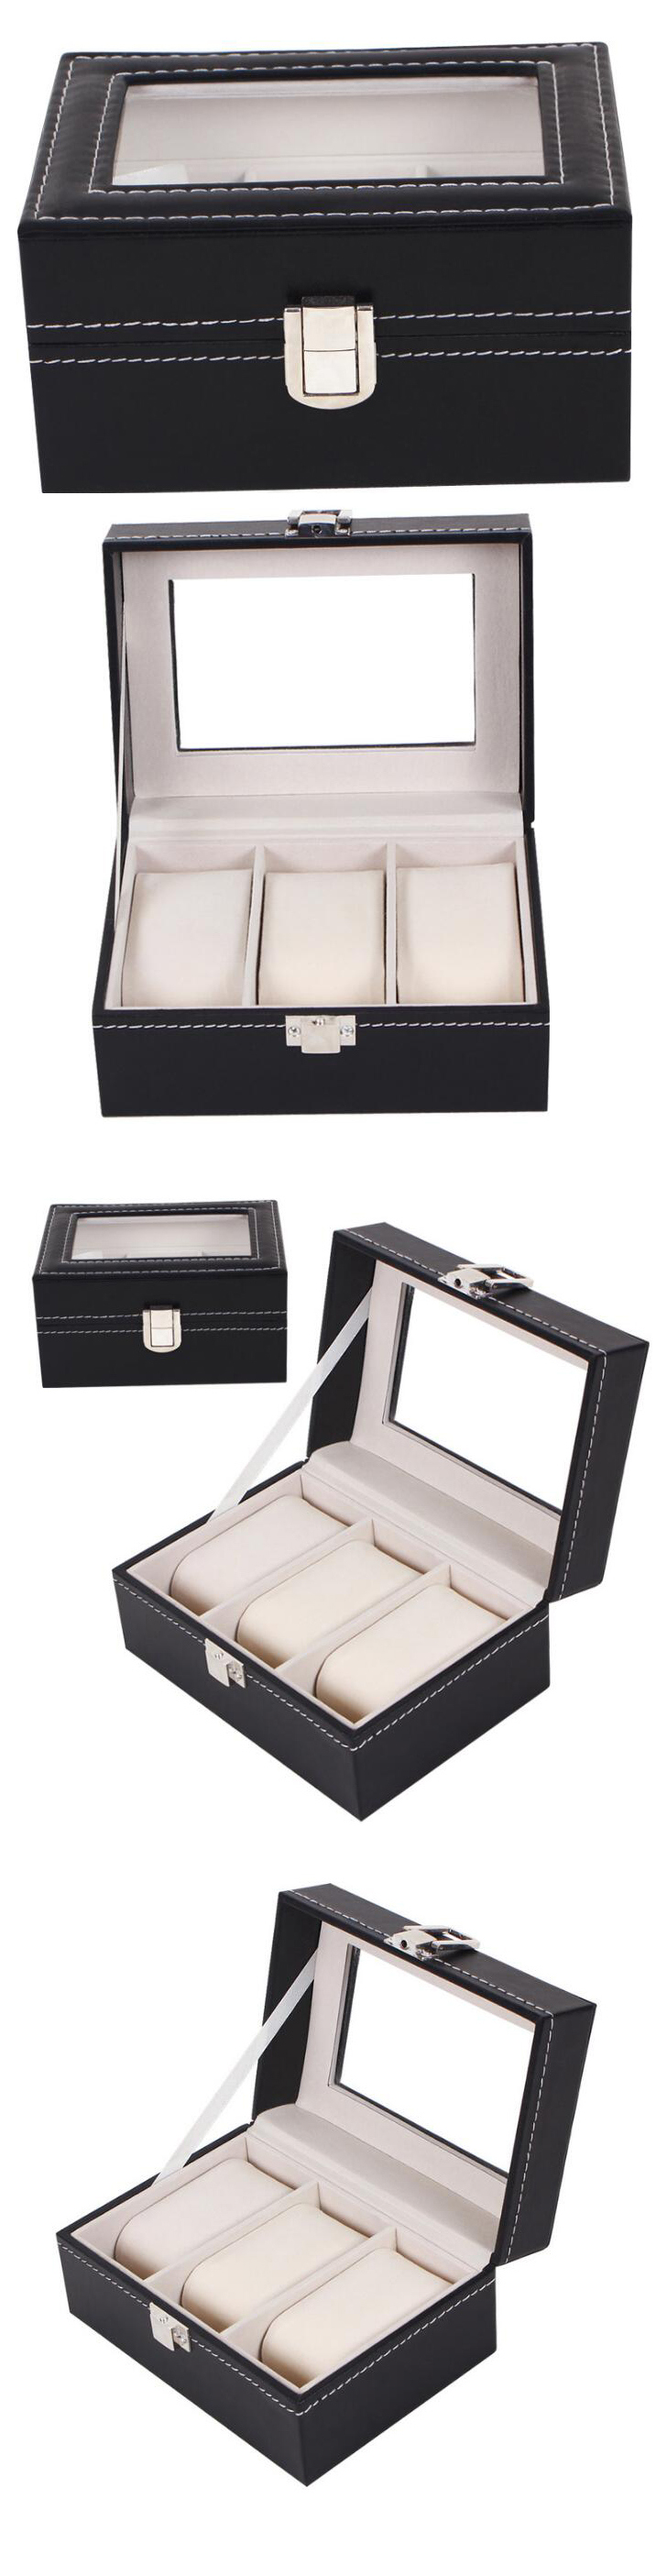 Spot Supply High Quality 3 Slots PU Leather Black Watch Storage Box, Wholesale Ready Stock PU Leather Watch Organizer Storage Case Jewelry Watch Box